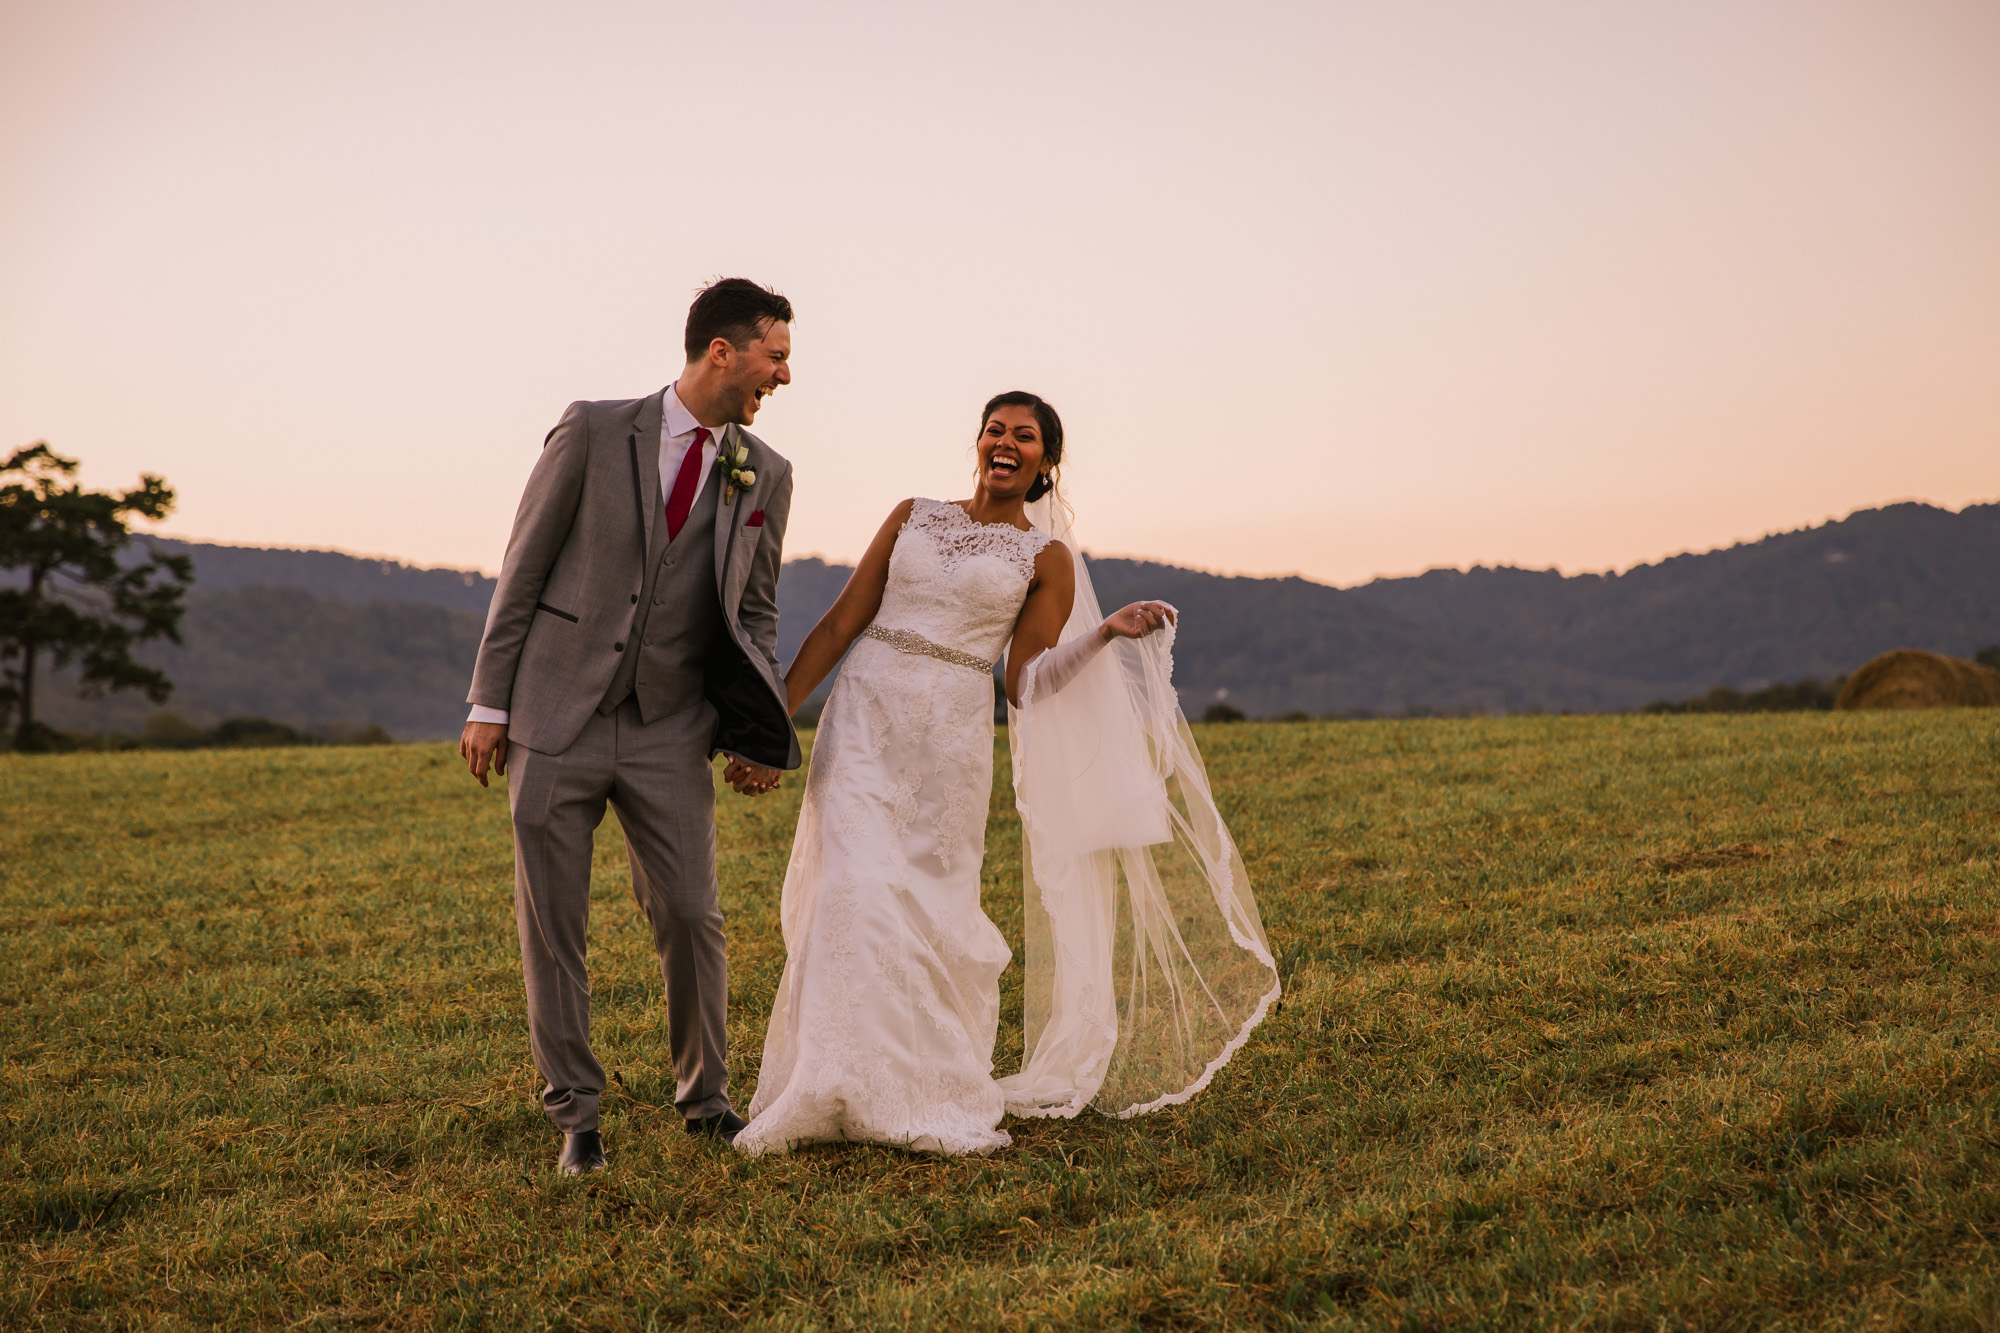 Waynesville NC Wedding Photography | Bride and Groom Laughing in the Field